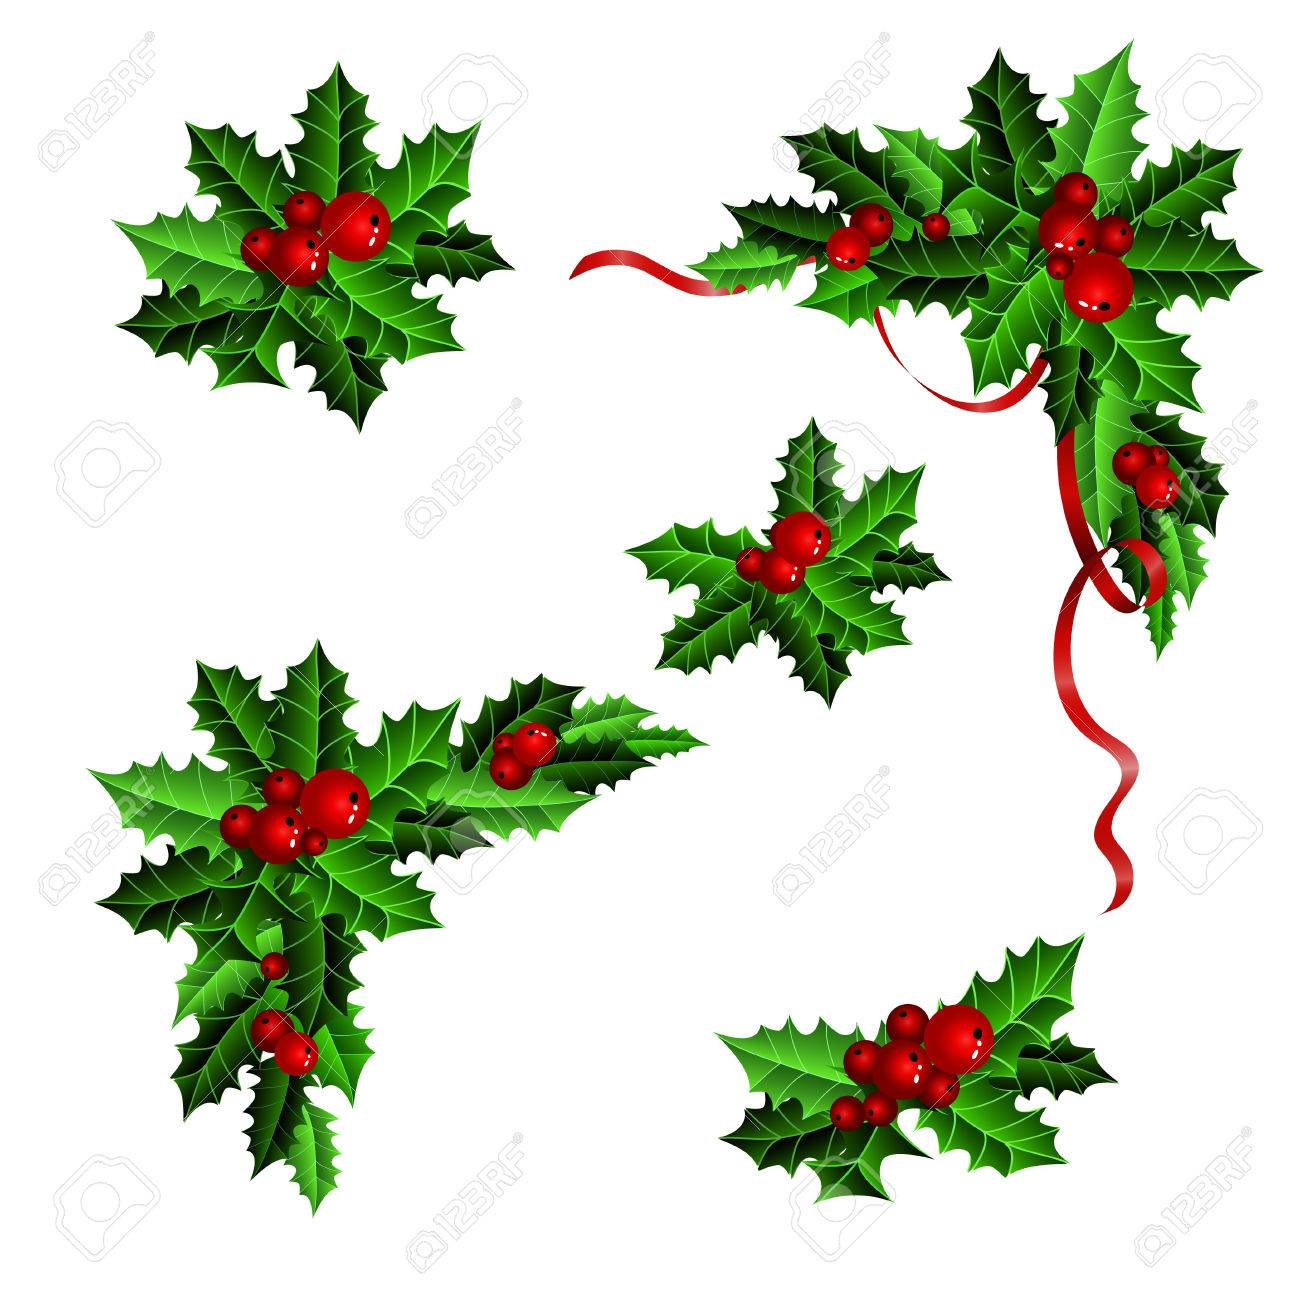 Christmas Holly Clipart Free.Decorative Elements With Christmas Holly Set Isolated